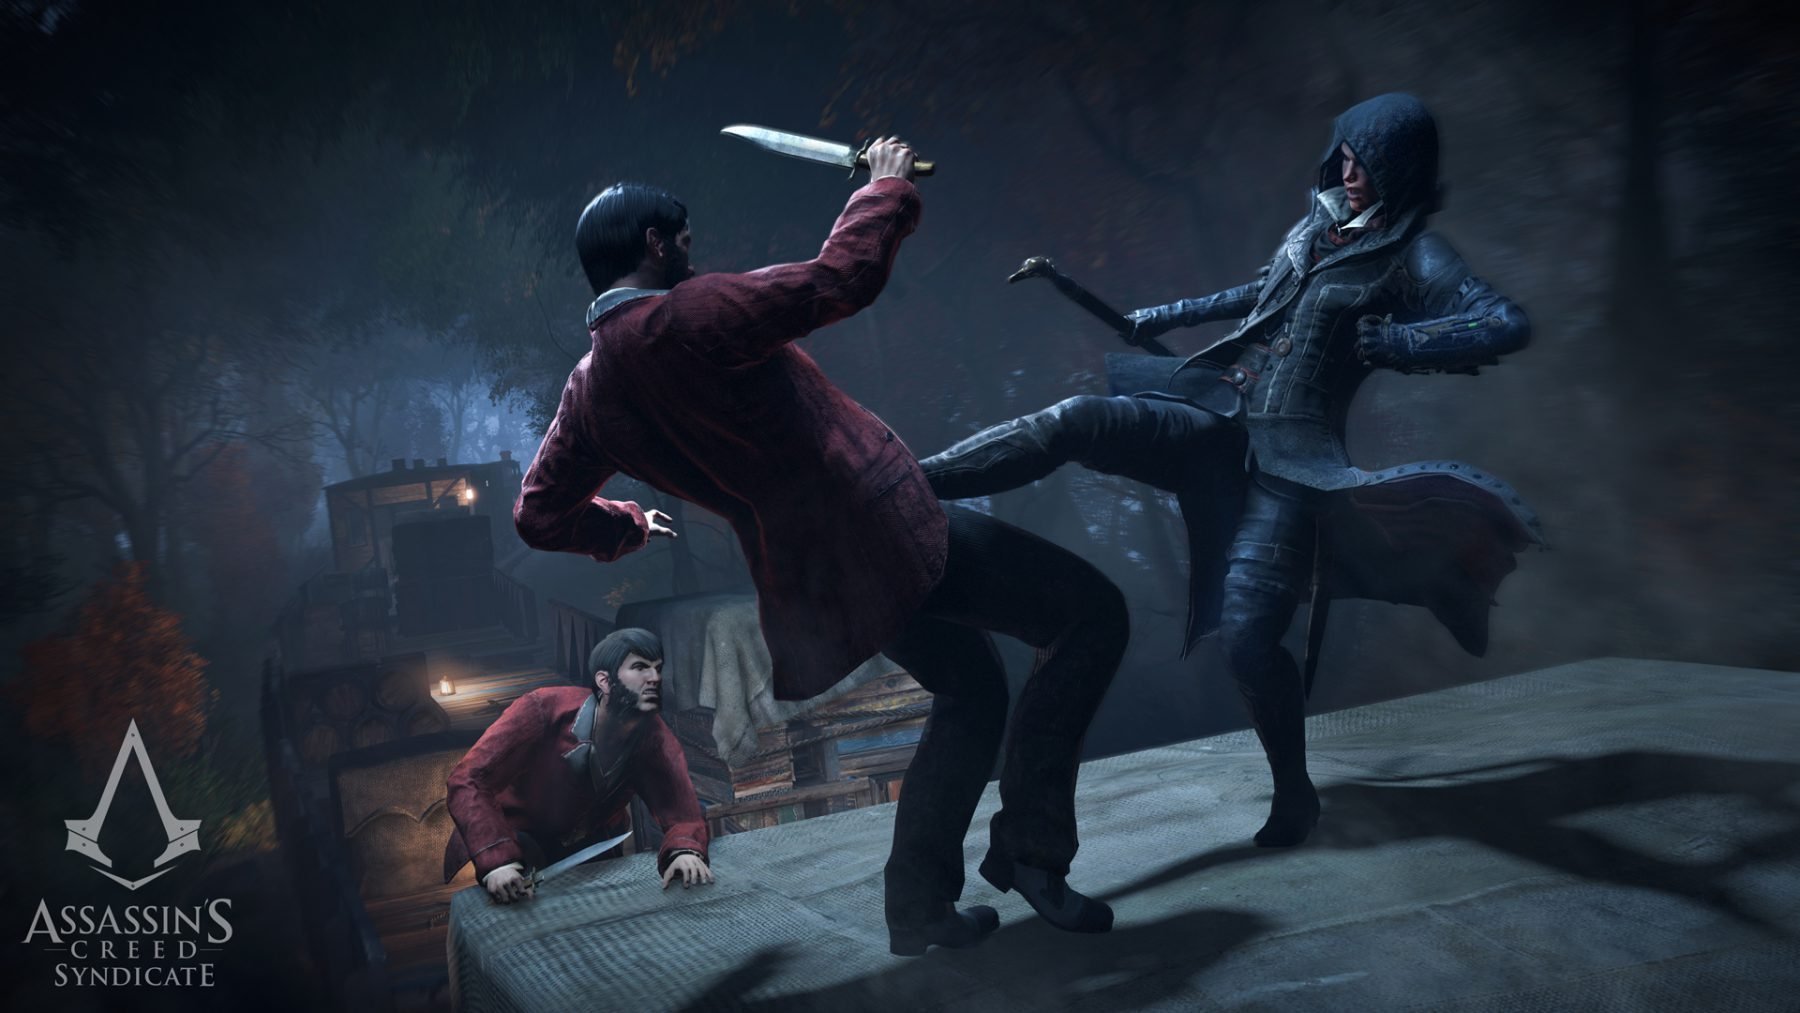 08132492-photo-assassin-s-creed-syndicate-evie-frye